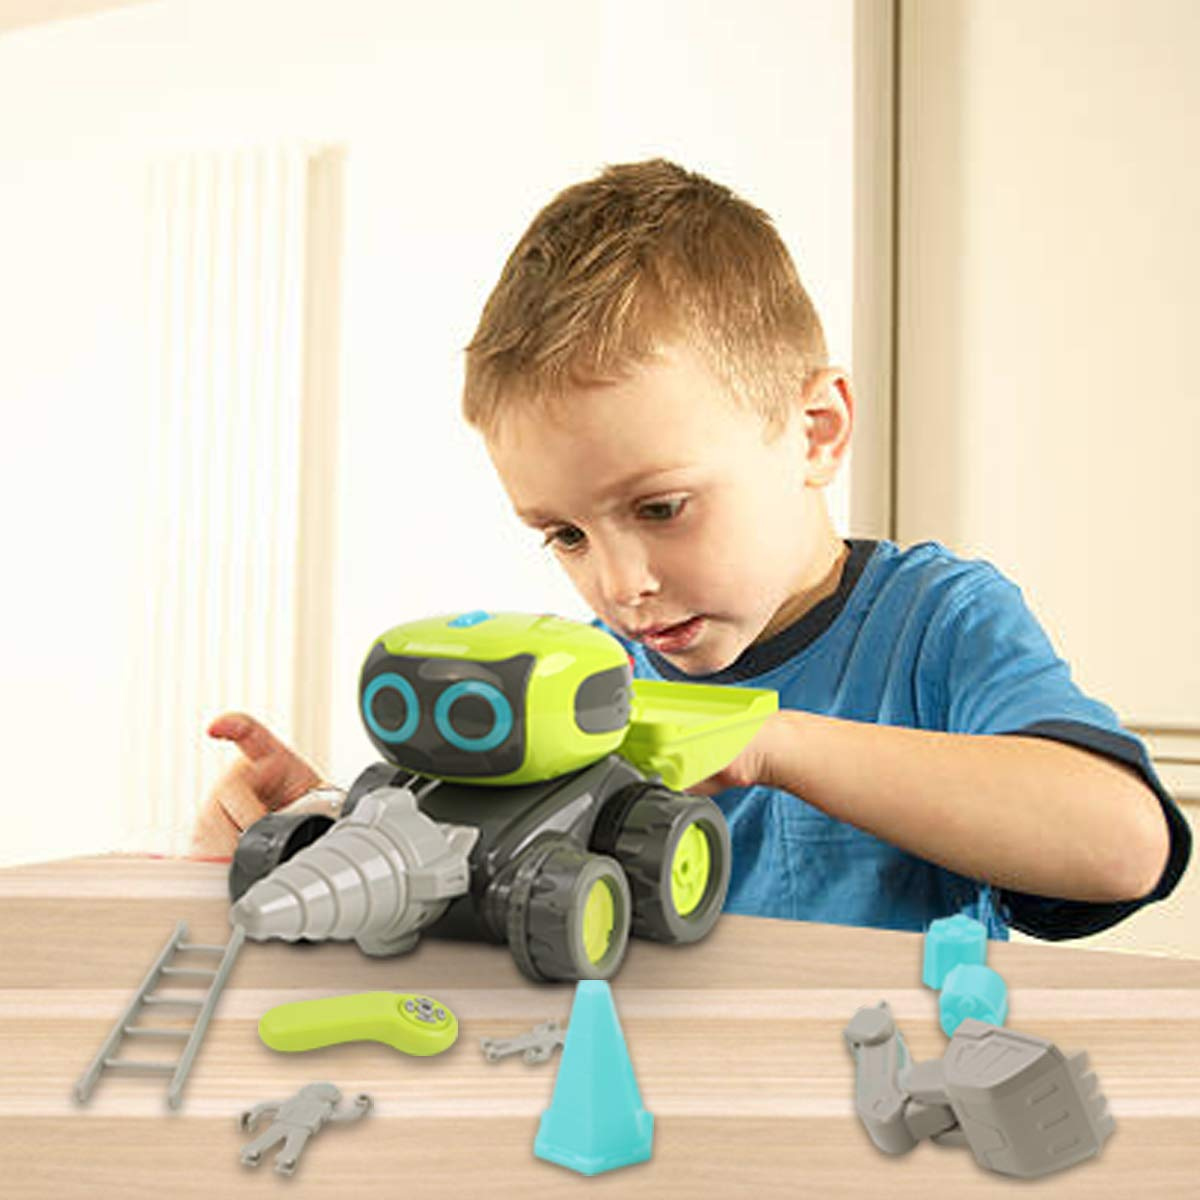 GILOBABY Remote Control Construction Team Engineering Vehicle, 3 in 1 RC Robot Car, Dance Moves, Plays Music, Light-up Eyes, Gift for Kids Age 3+ by GILOBABY (Image #6)